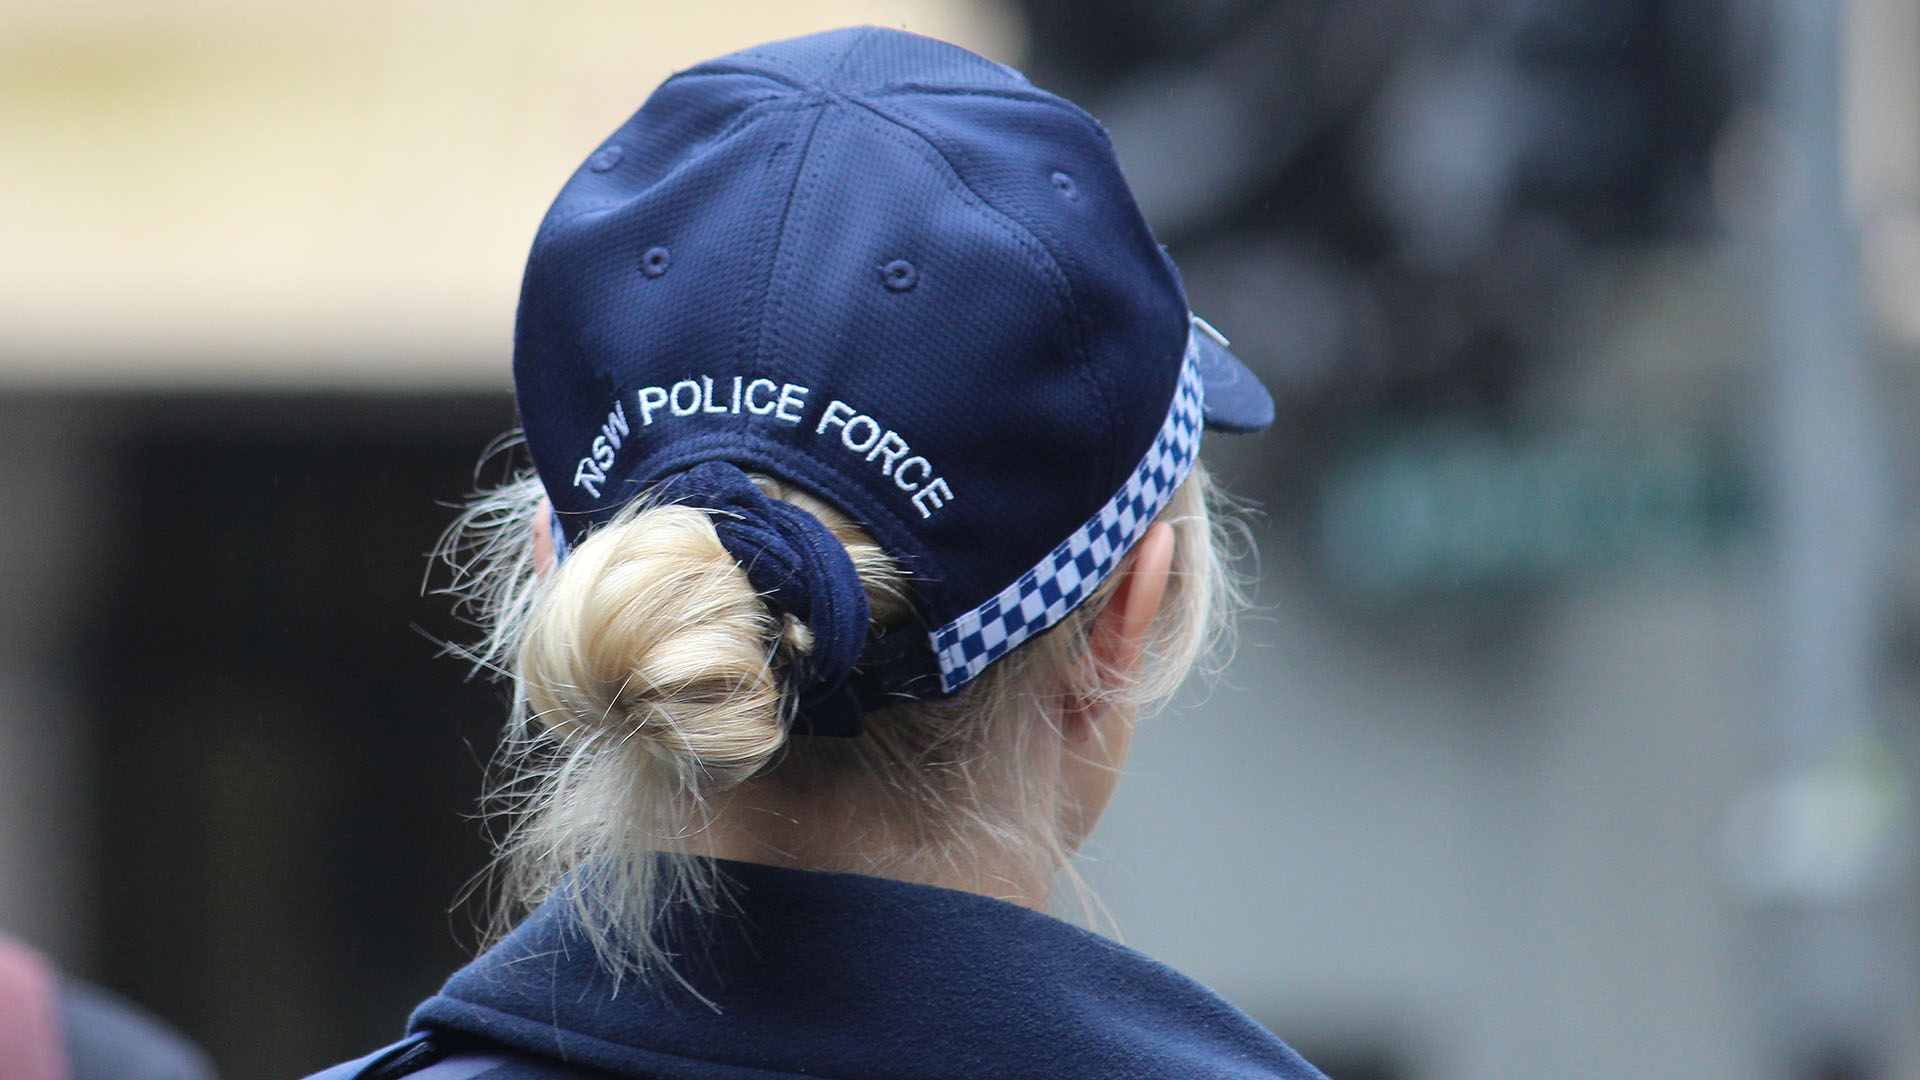 Women's police stations in Australia: would they work for 'all' women?